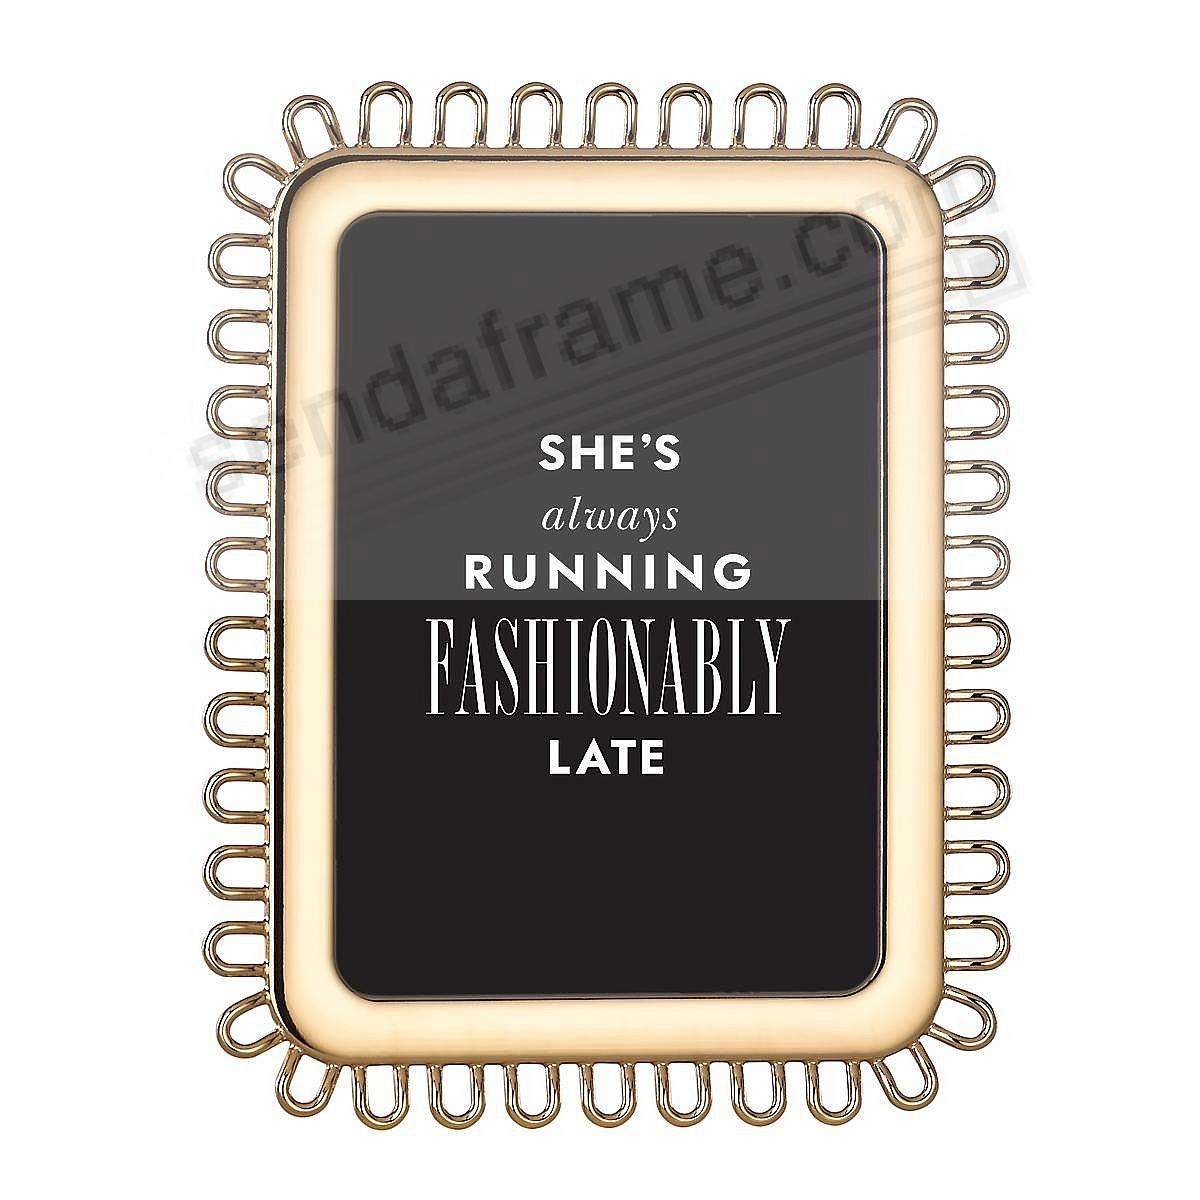 KEATON STREET GOLD frame for 5x7 prints by kate spade new york®